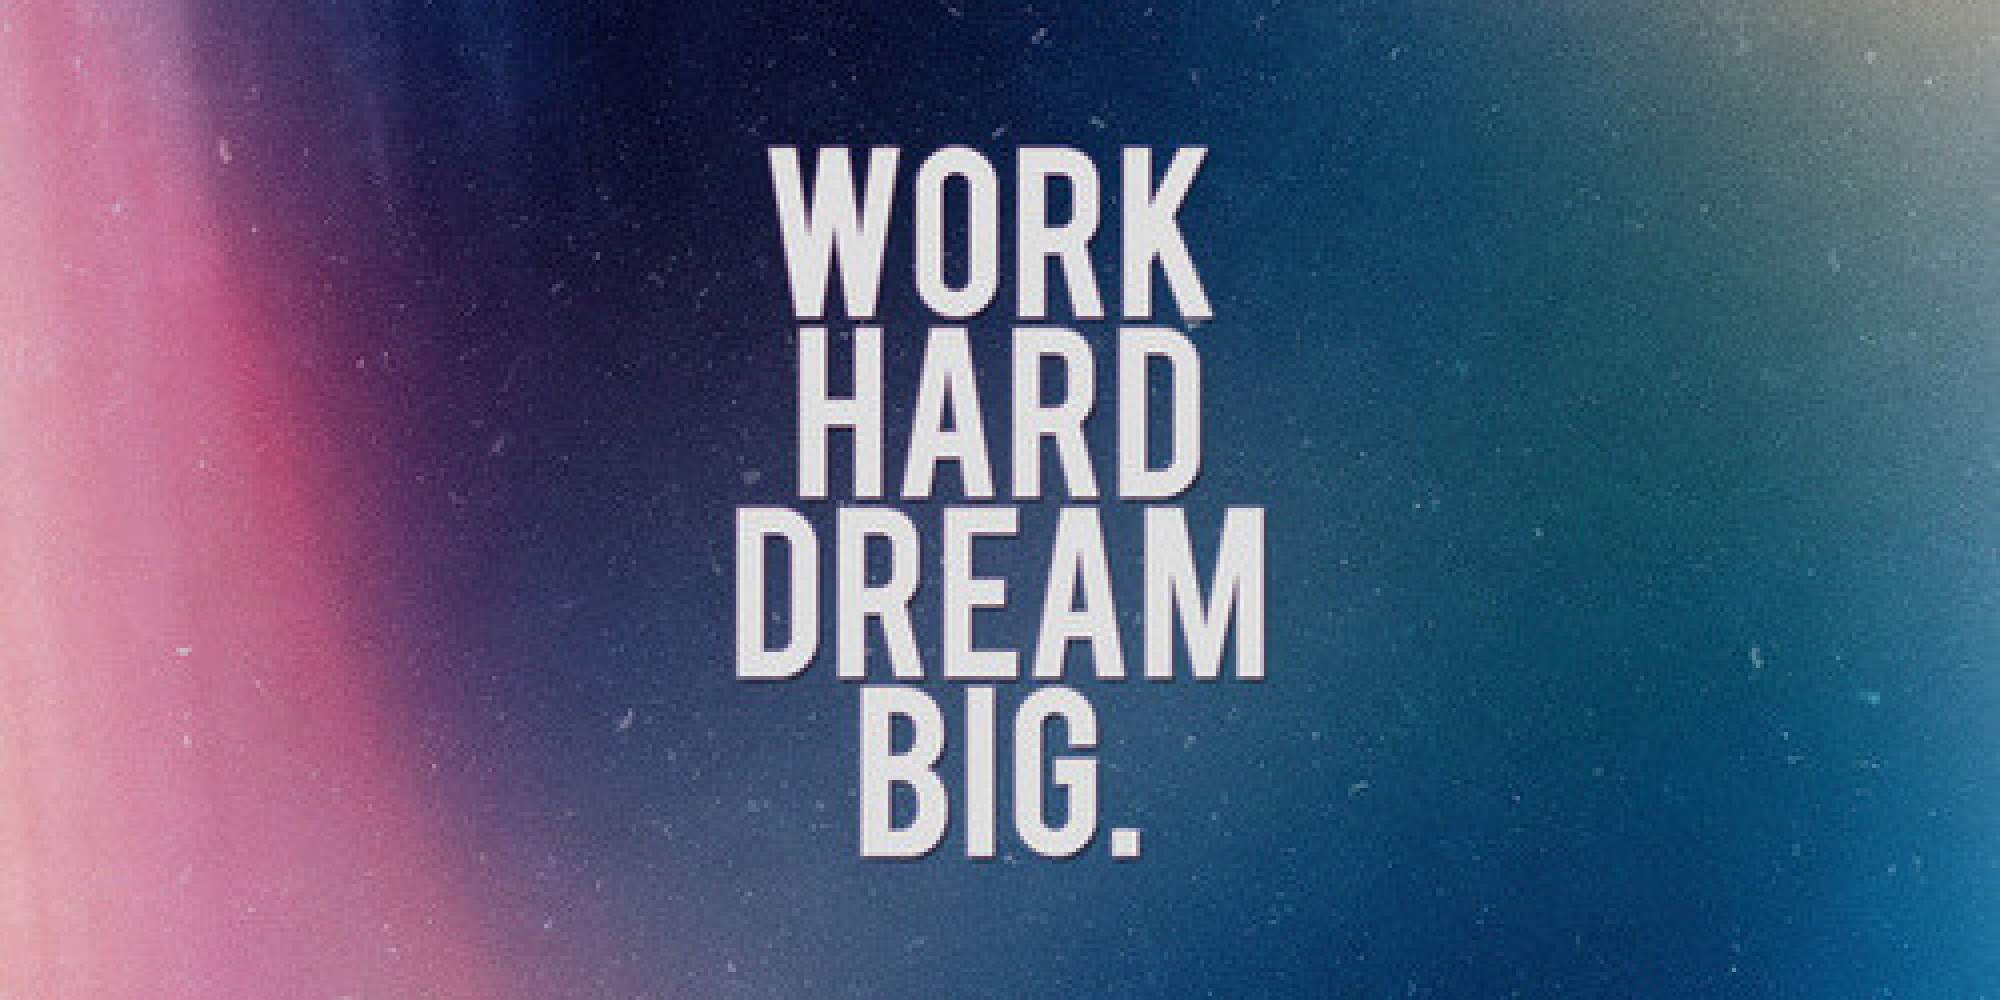 Work Hard Dream Big Pictures Photos And Images For Facebook